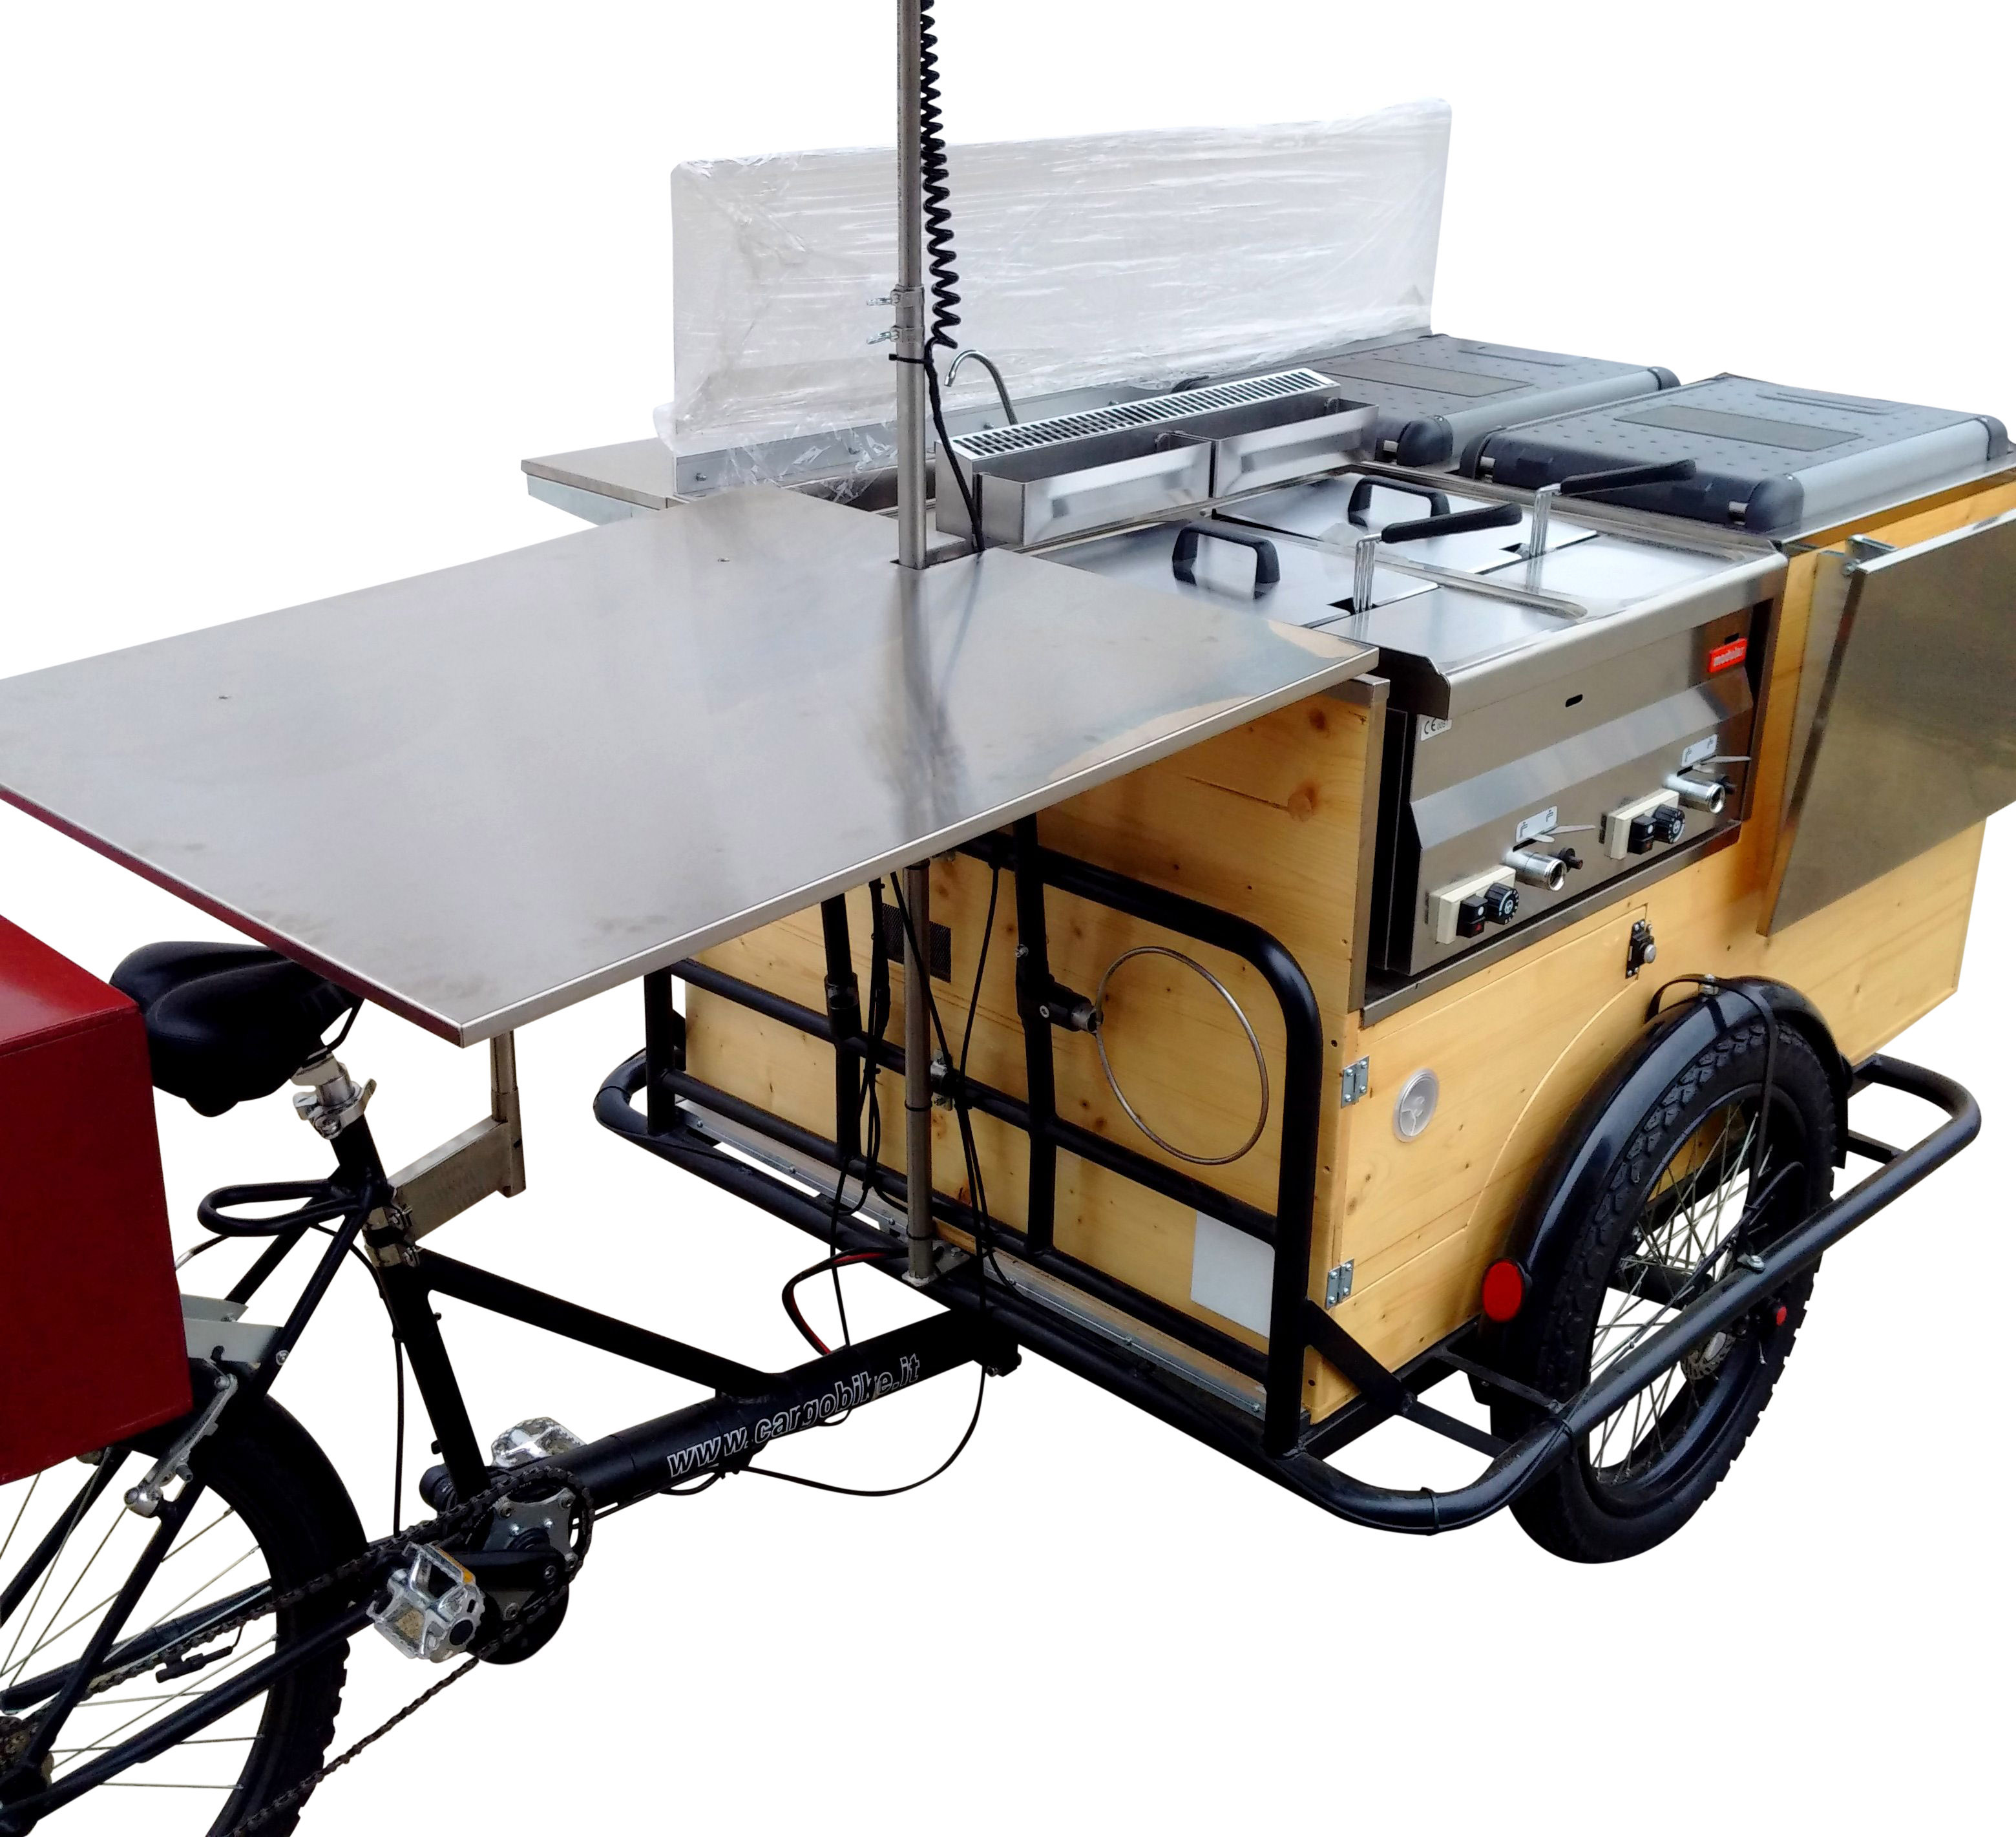 STREET_FOOD_BIKE_QUADRA_FRIGGITRICE_IN_LEGNO_TRICICLO_CARGO_BIKE_25